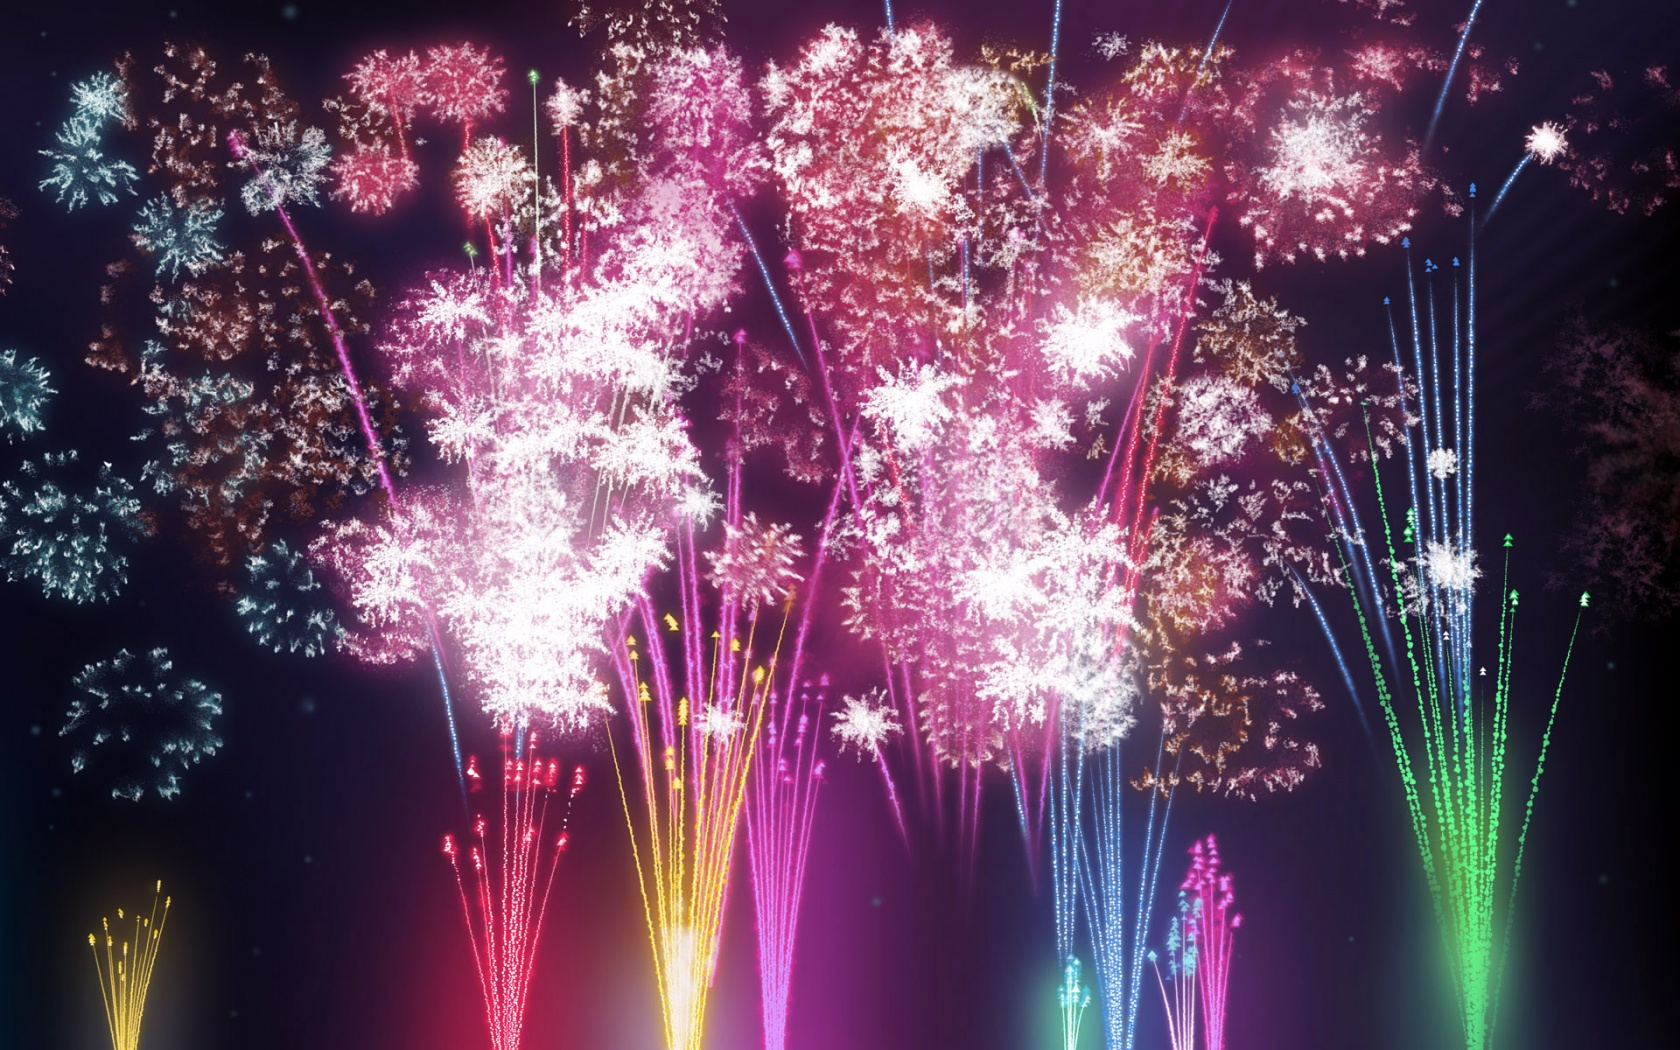 new year fireworks wallpapers hd wallpapers   My RPG blog new year fireworks wallpapers hd wallpapers